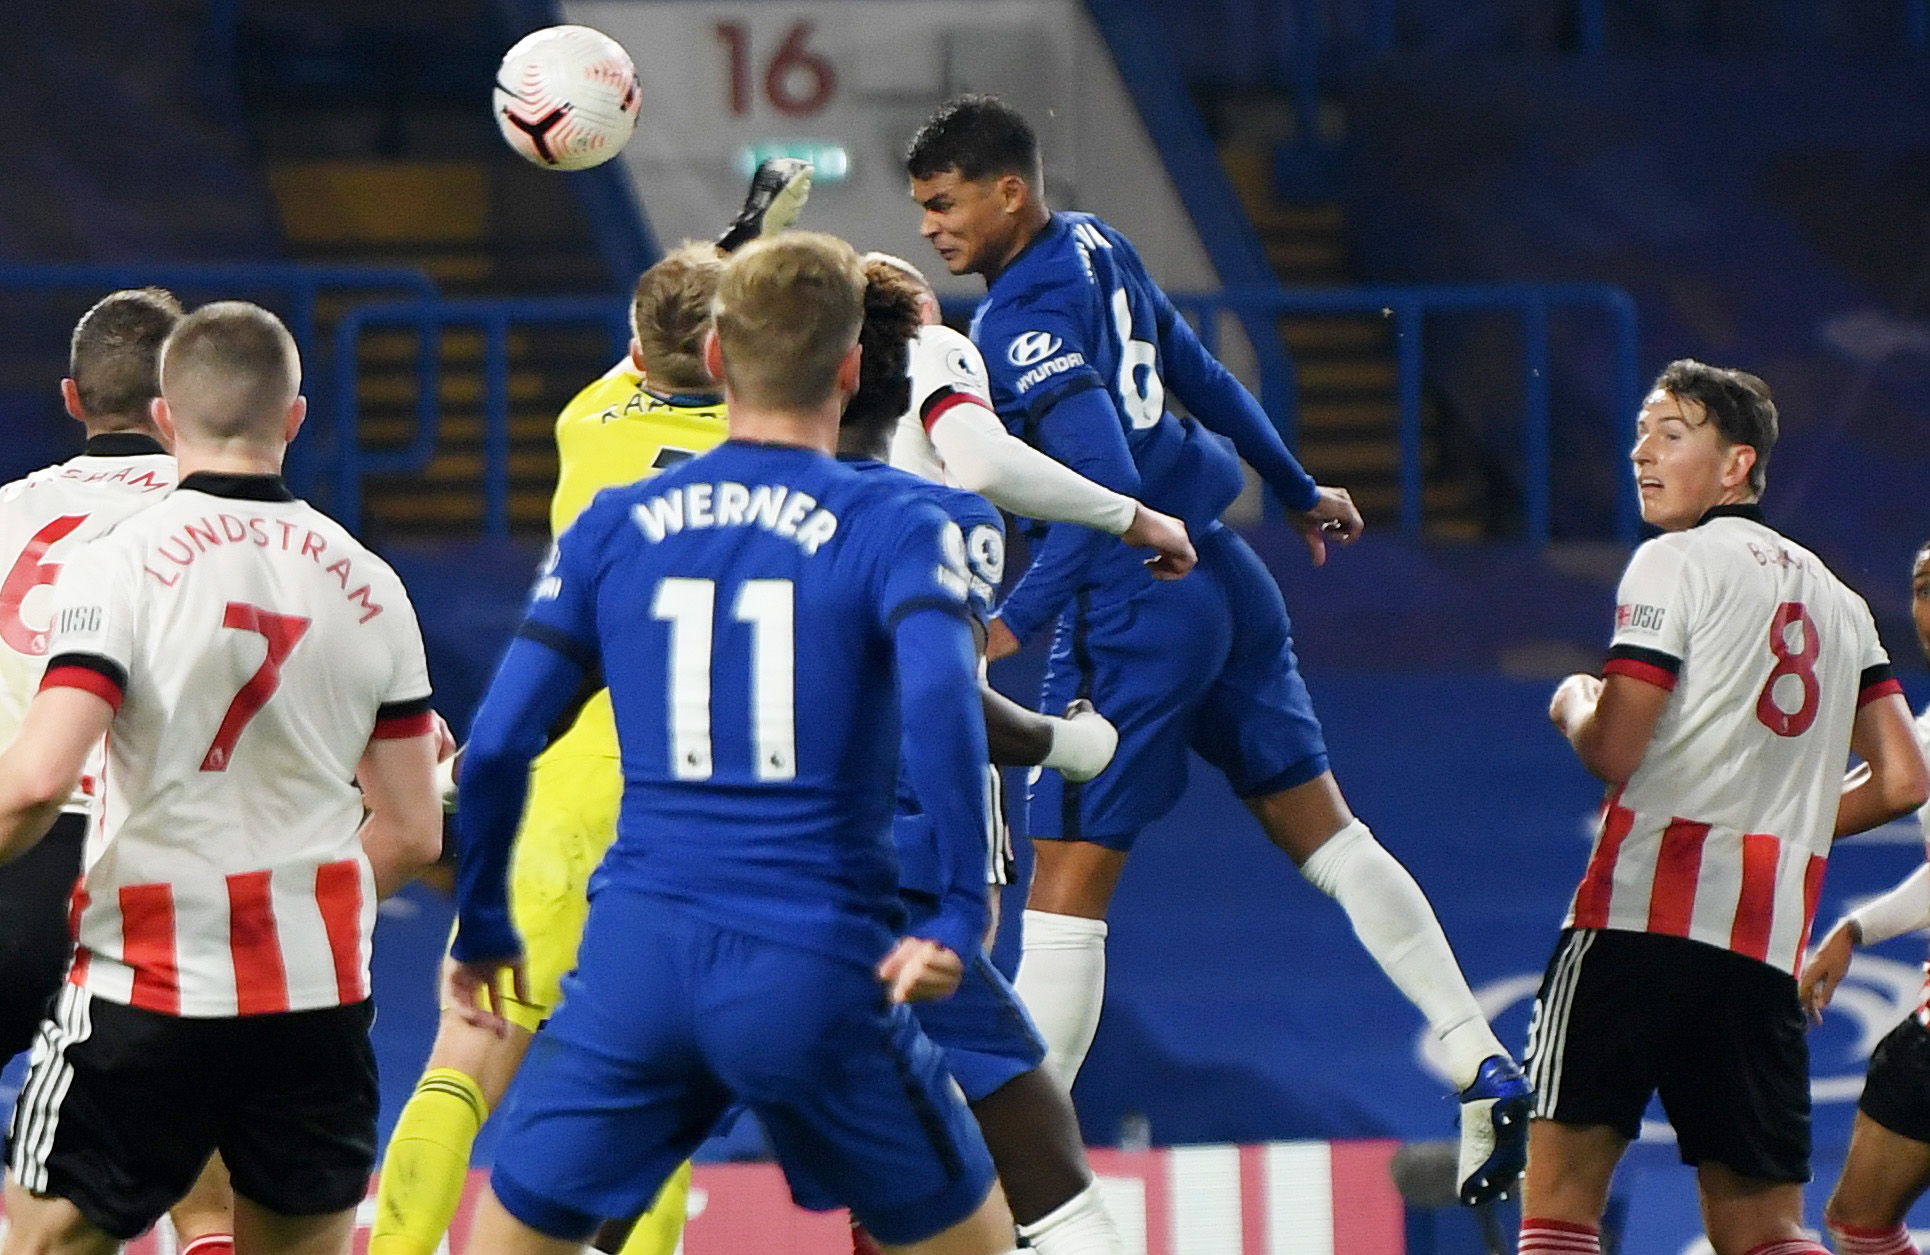 Chelsea's Thiago Silva scores their third goal n during the Premier League match between Chelsea and Sheffield United, at Stamford Bridge, in London, Britain, on November 7, 2020. Photo: Pool via Reuters